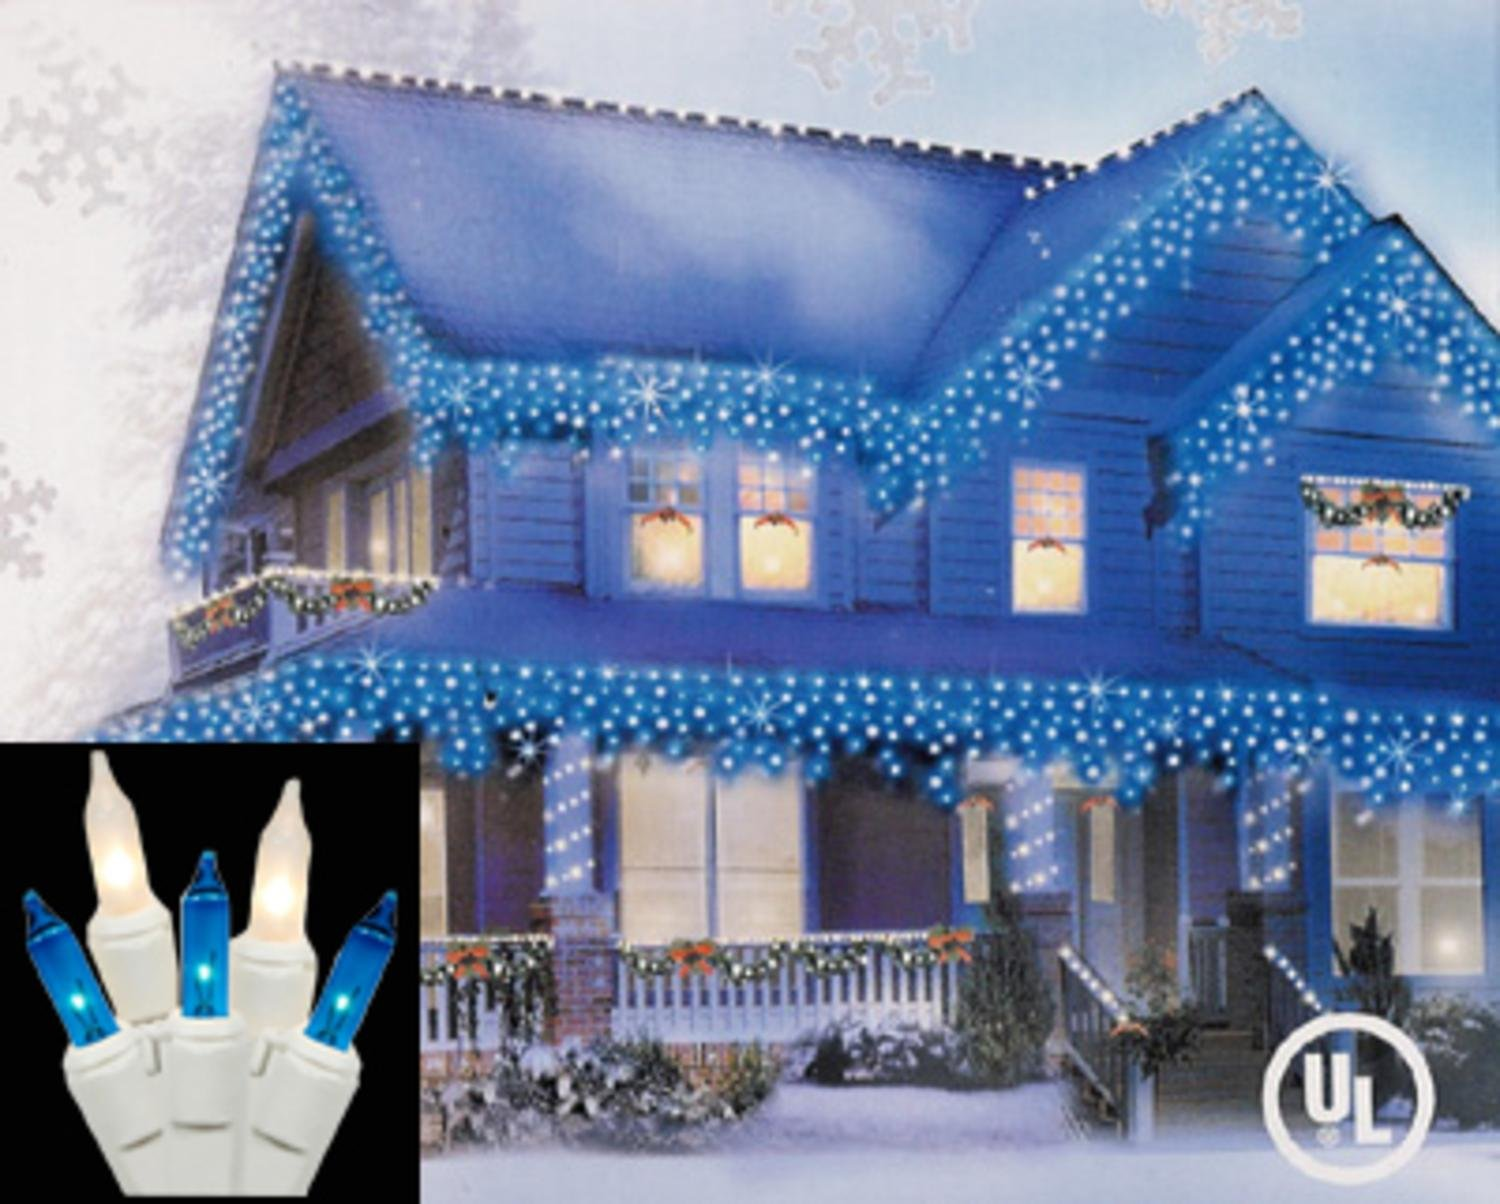 amazoncom set of 100 blue and clear frosted icicle christmas lights white wire home kitchen - White Icicle Christmas Lights